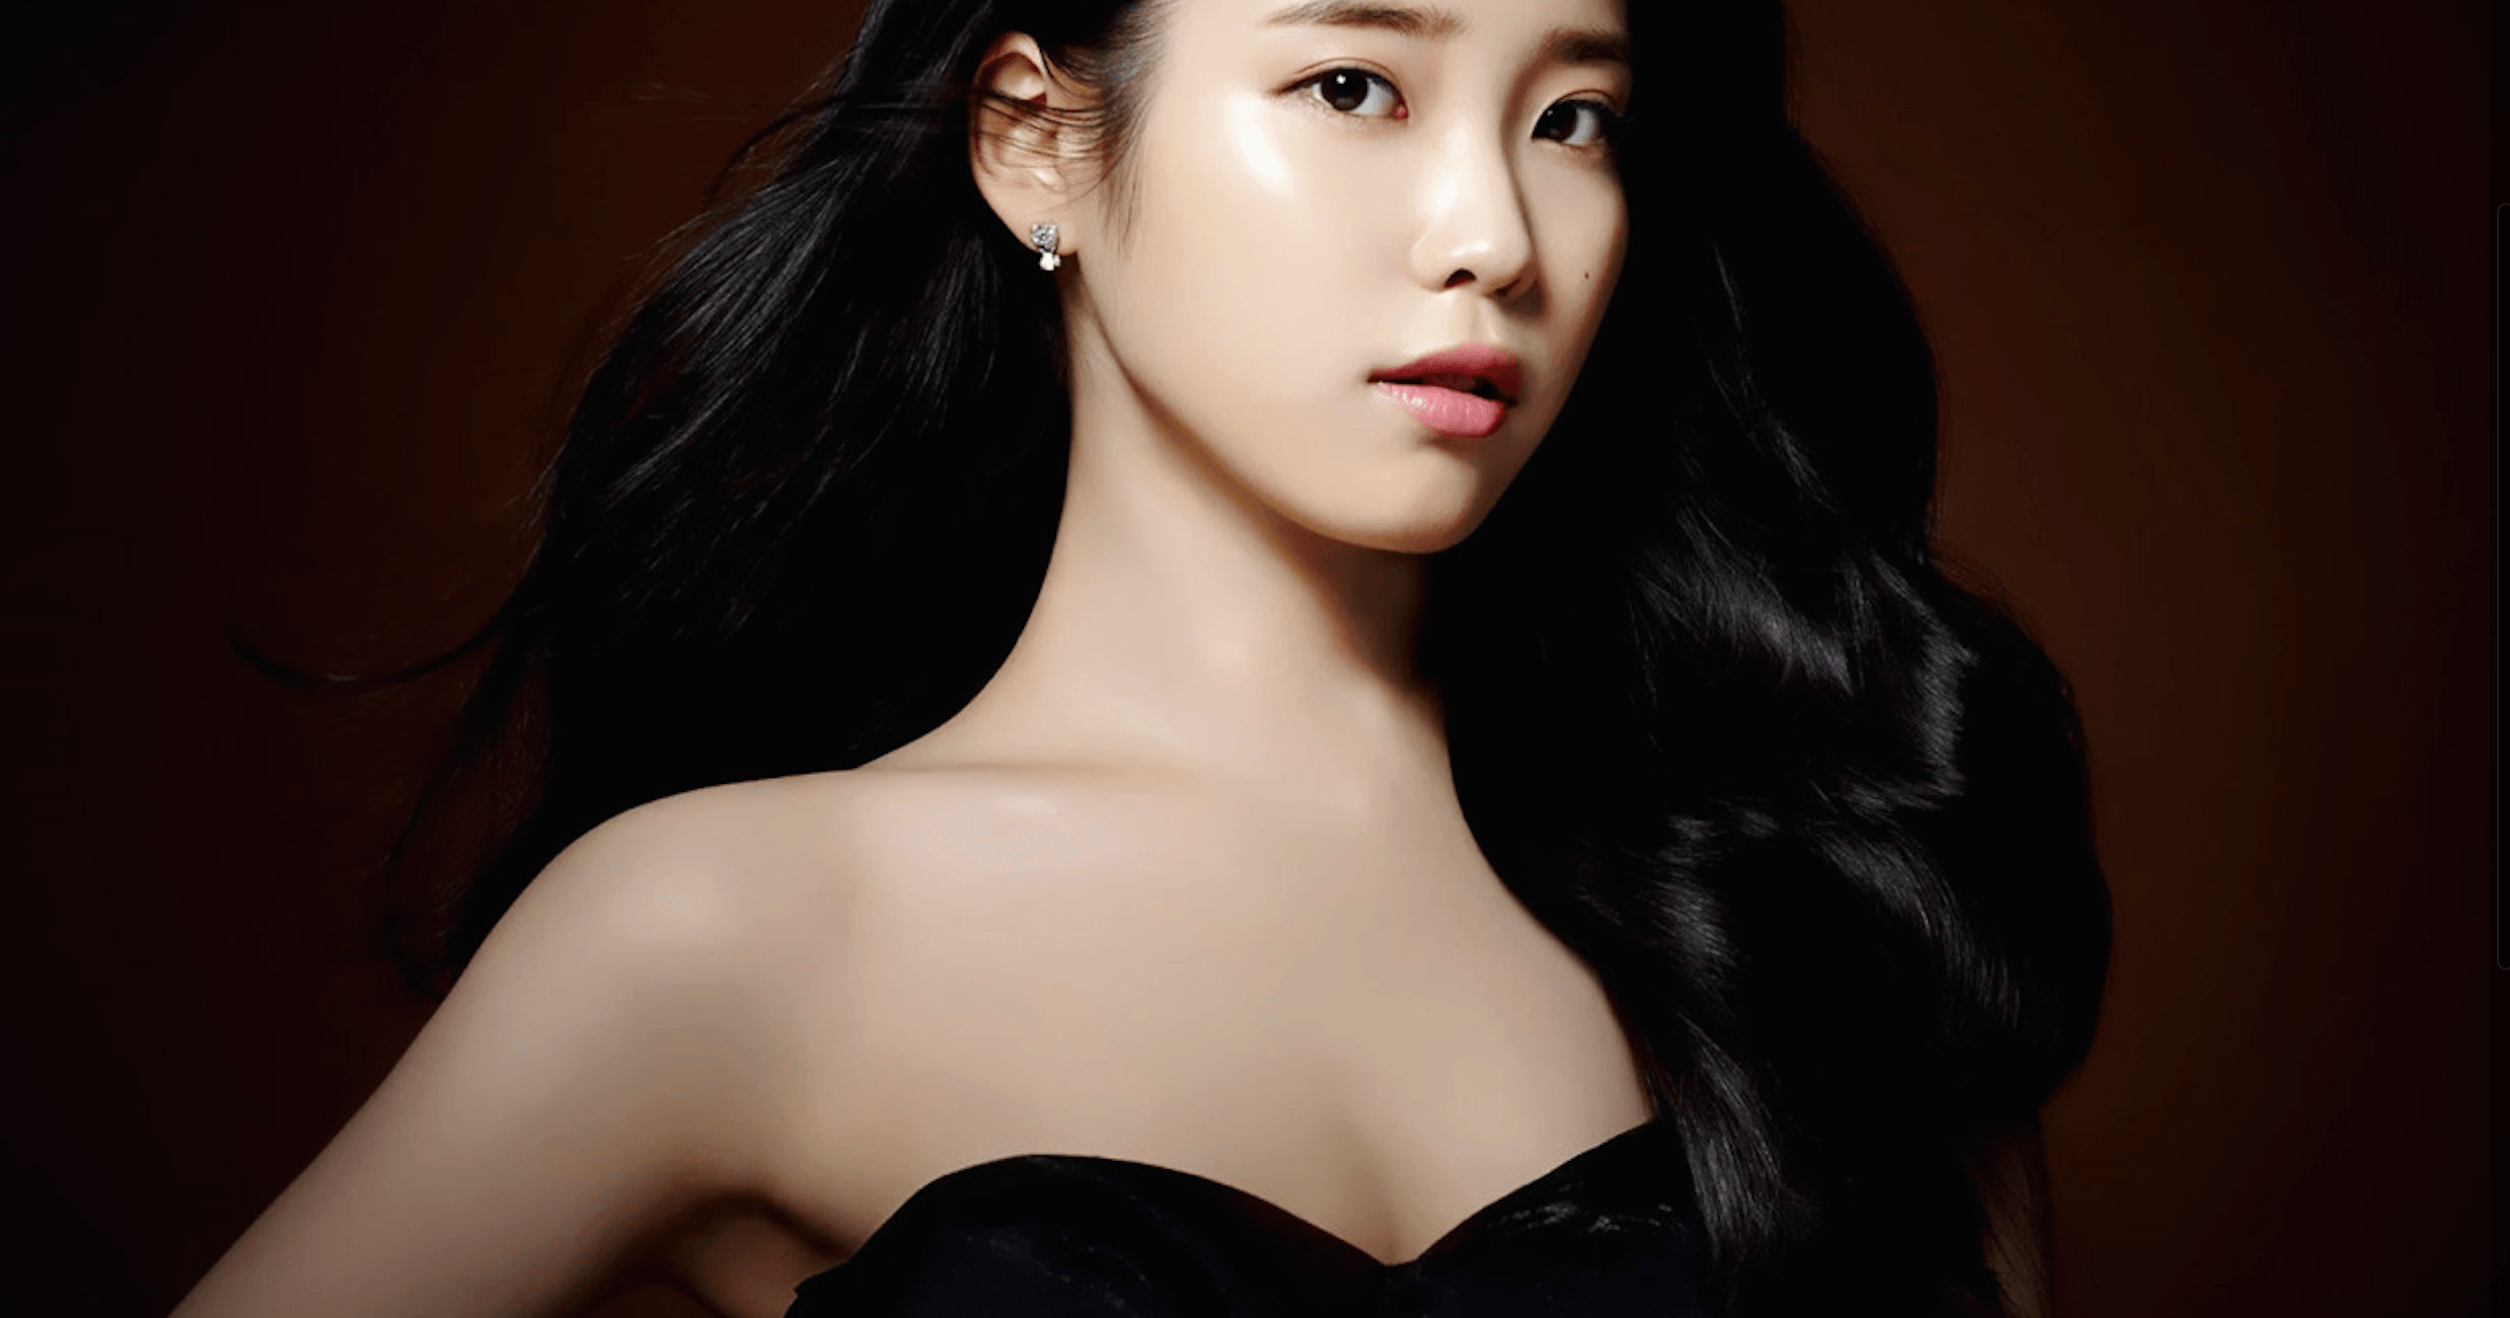 IU: IU Releases Sexy New Photo From Her Latest GQ Photo Shoot